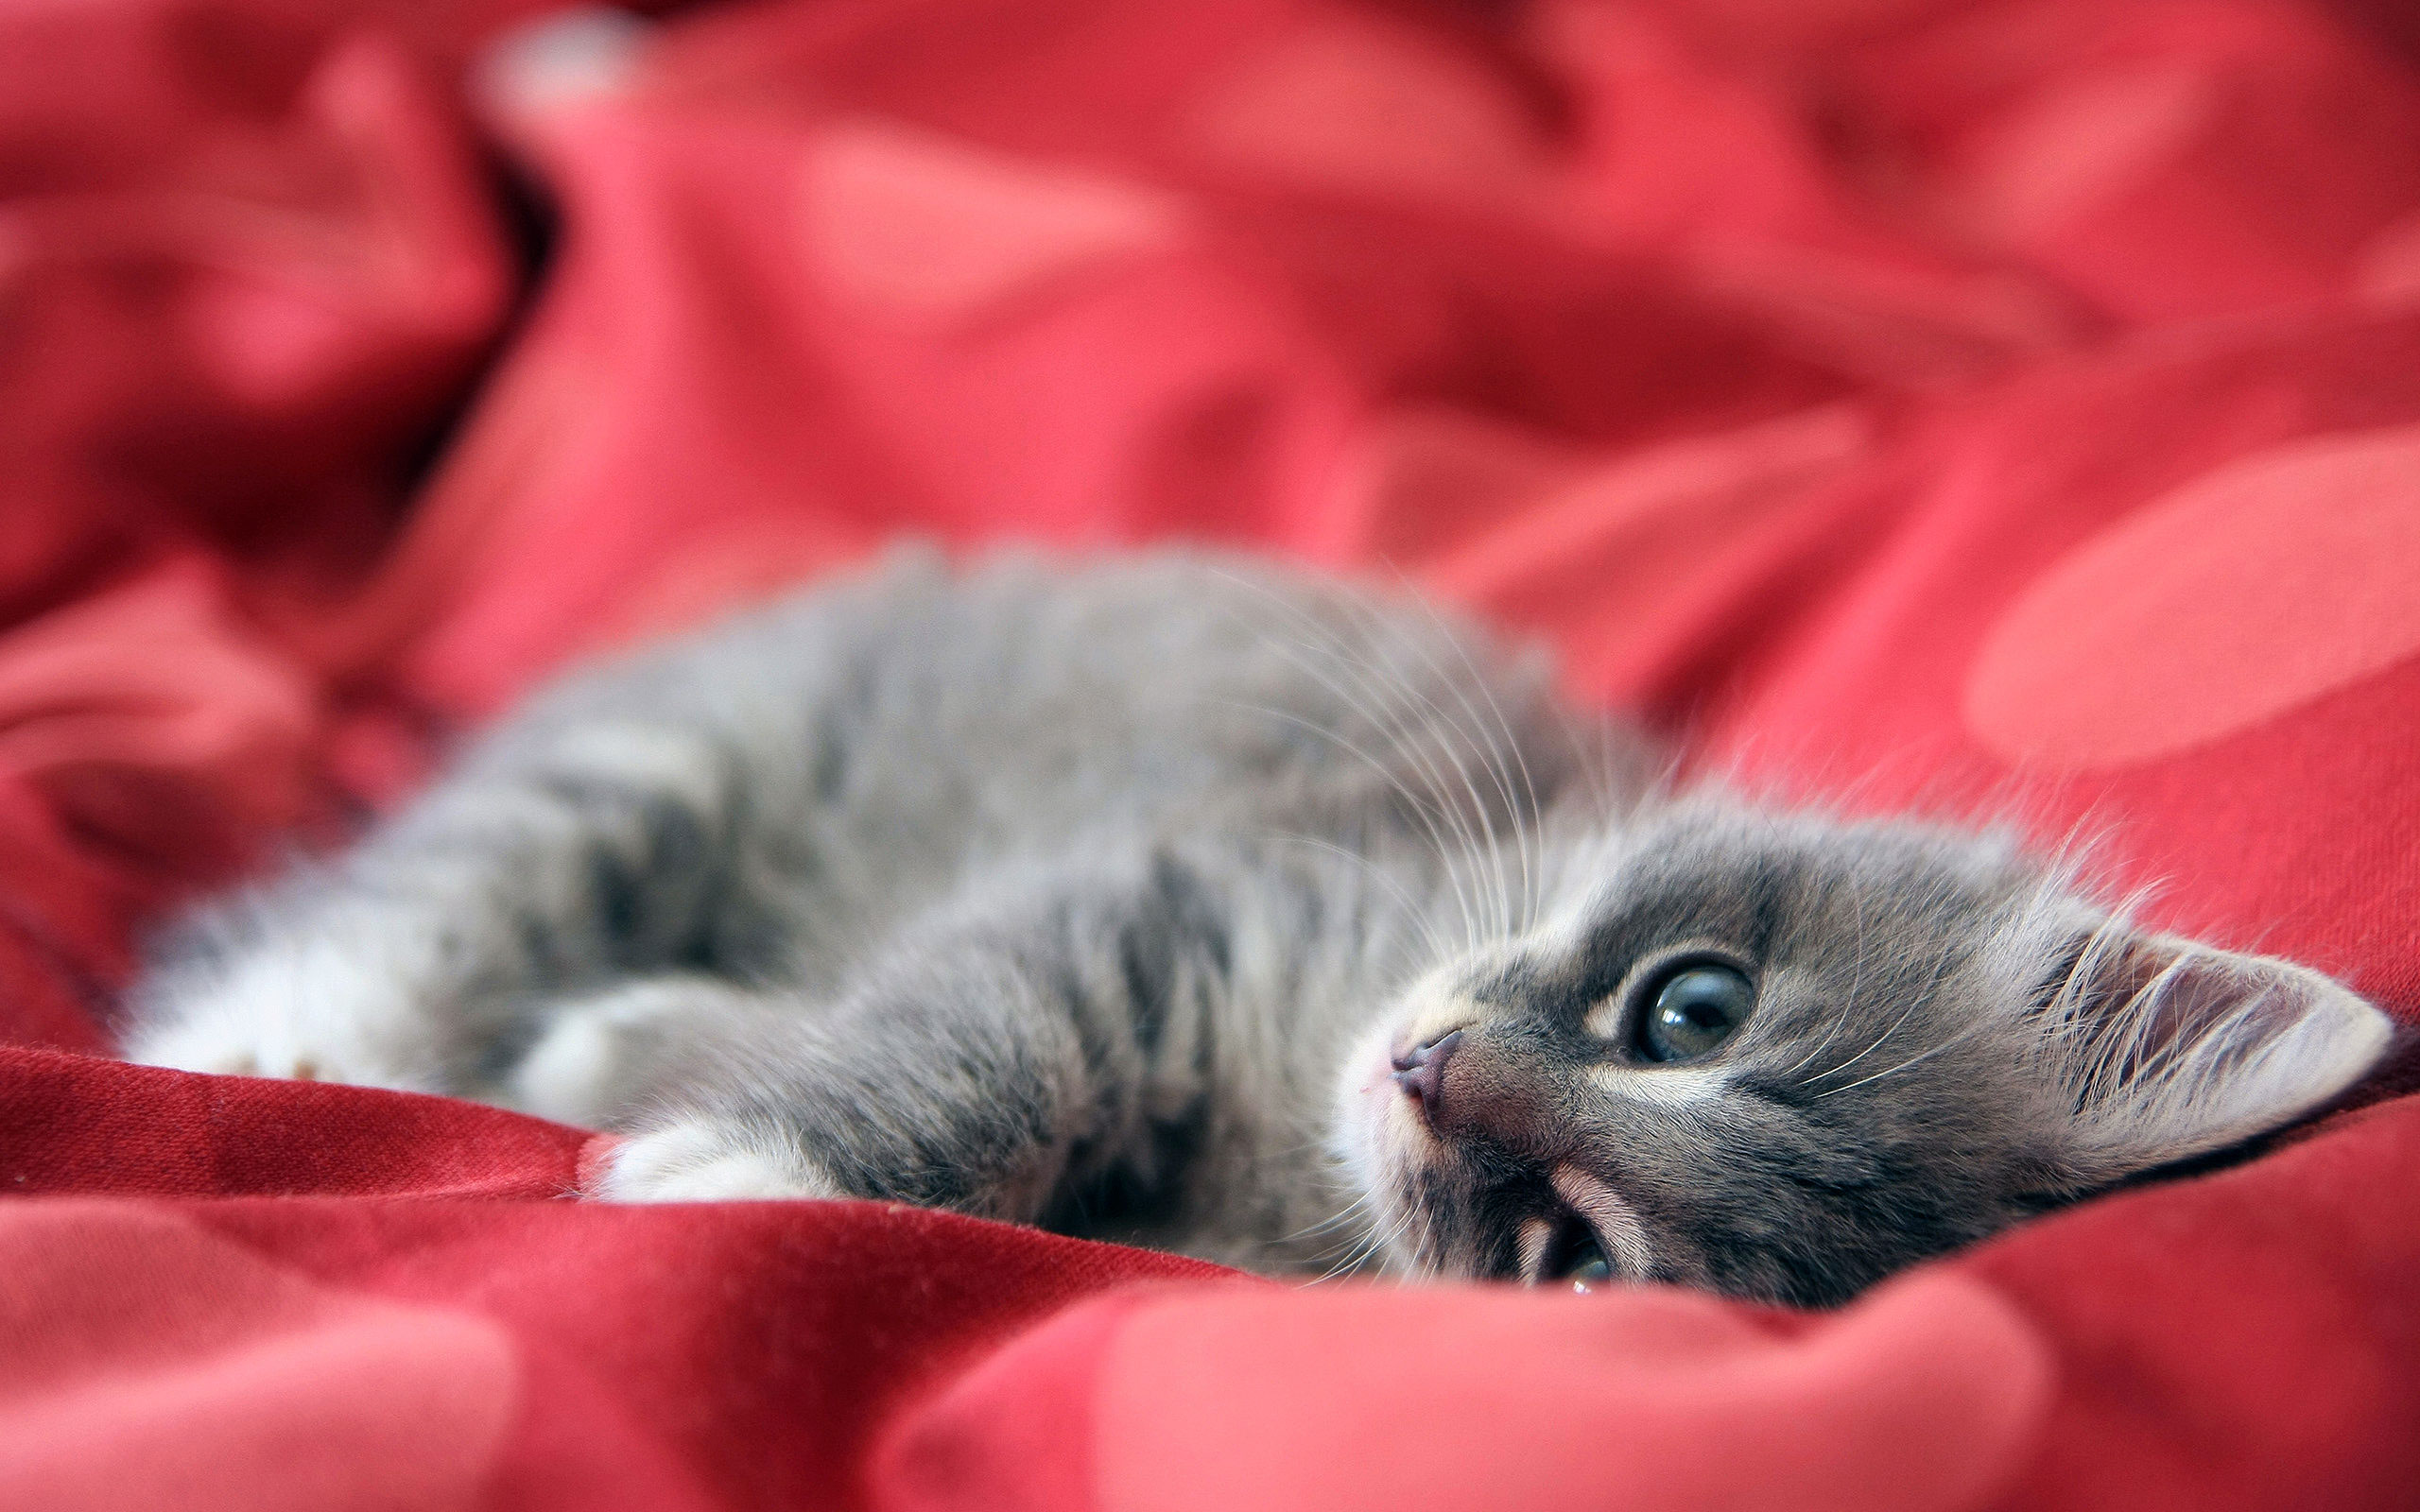 4 (Showcase: 40 Adorable Cat Wallpapers in 1080p)